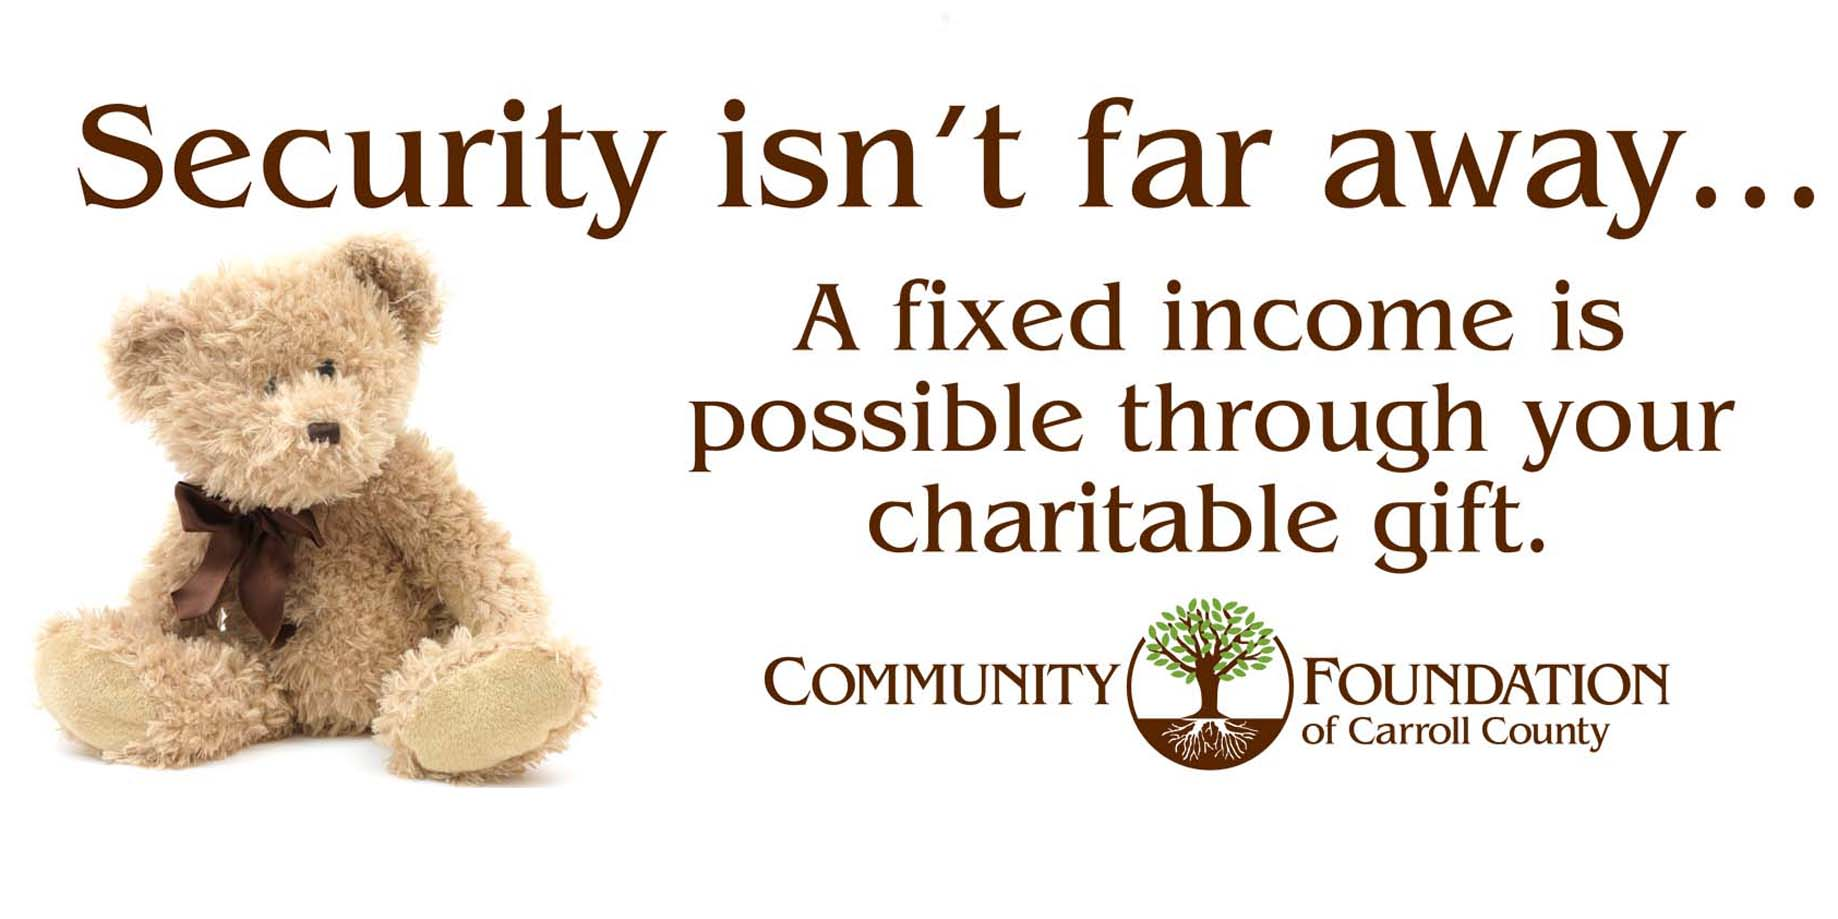 Fixed Income through charitable funds